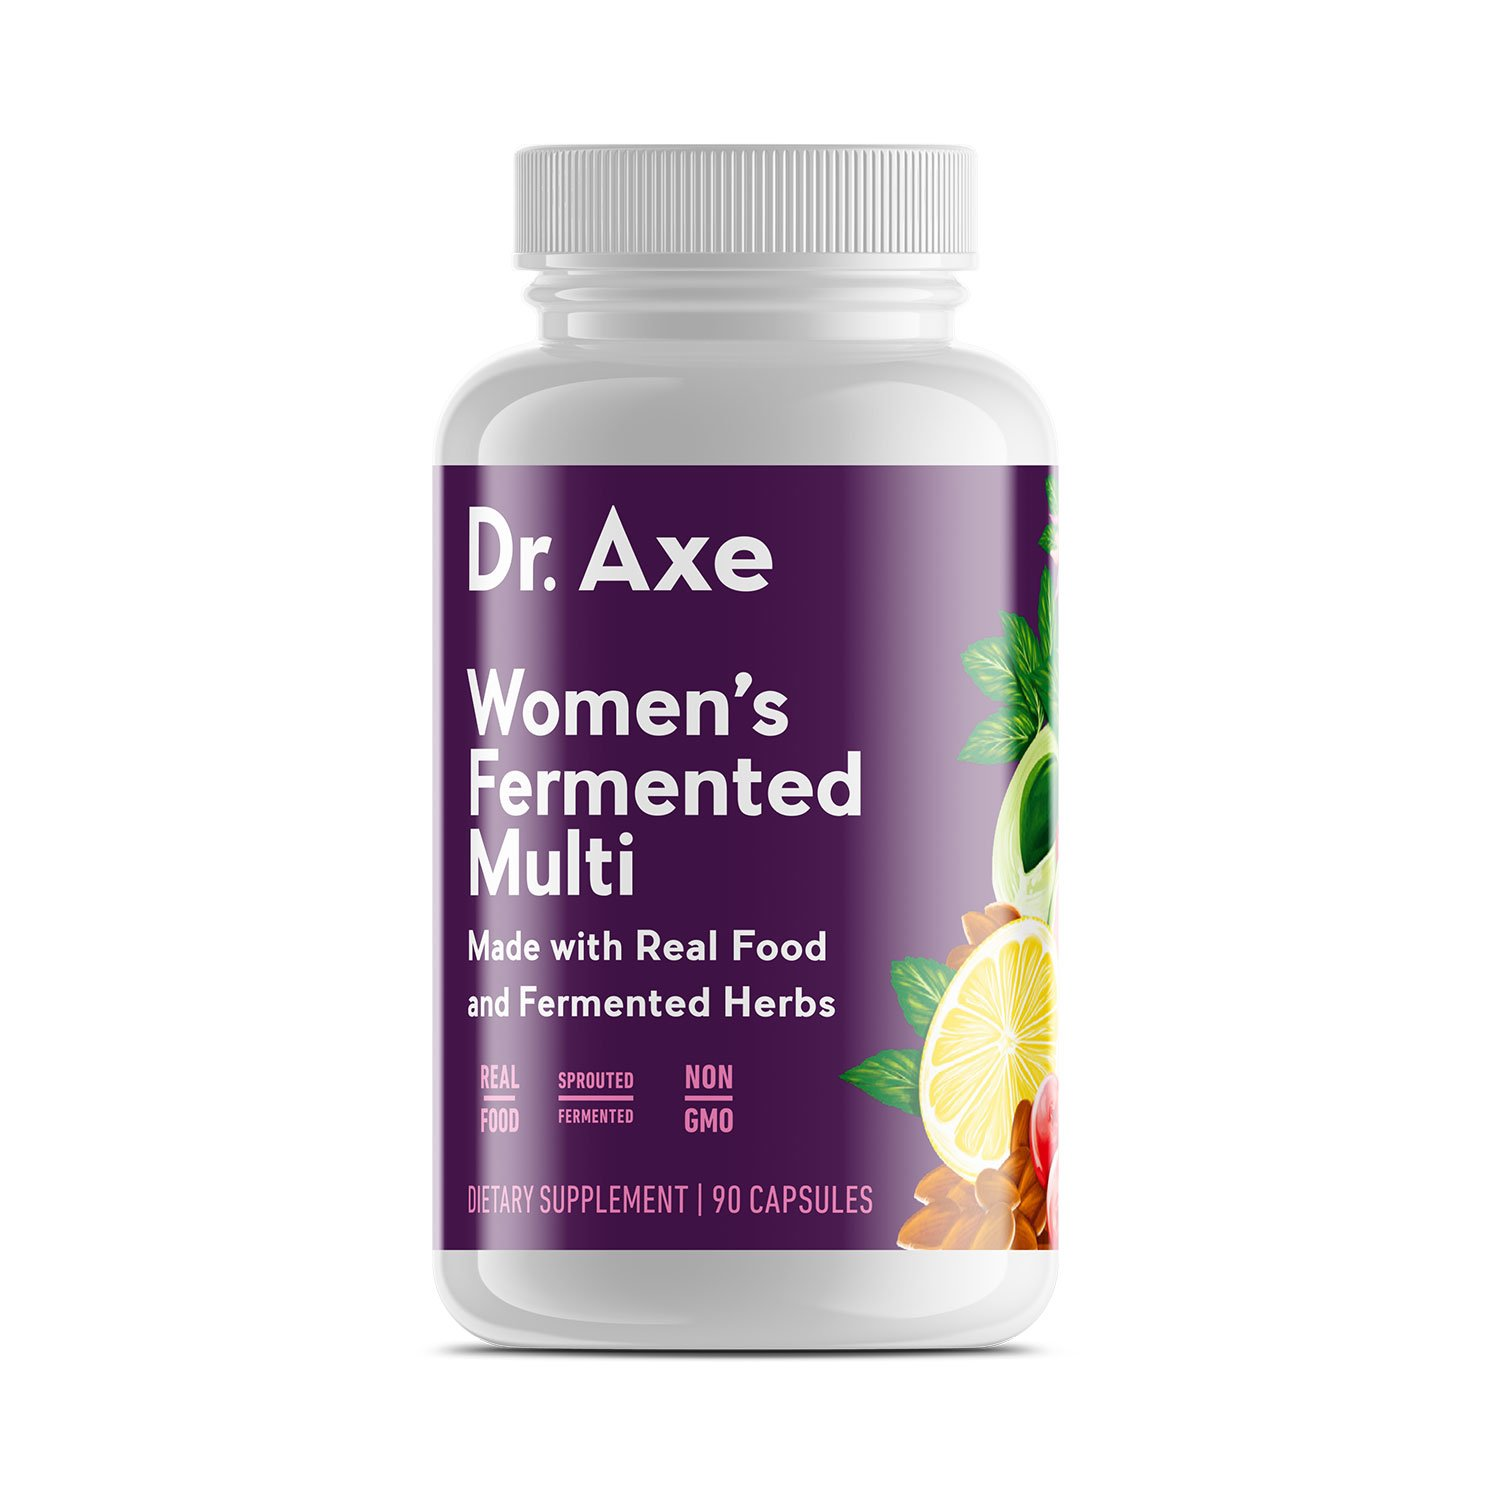 Dr. Axe Women's Multivitamin Supplement, 90 Capsules - Made with Real Food and Fermented Herbs